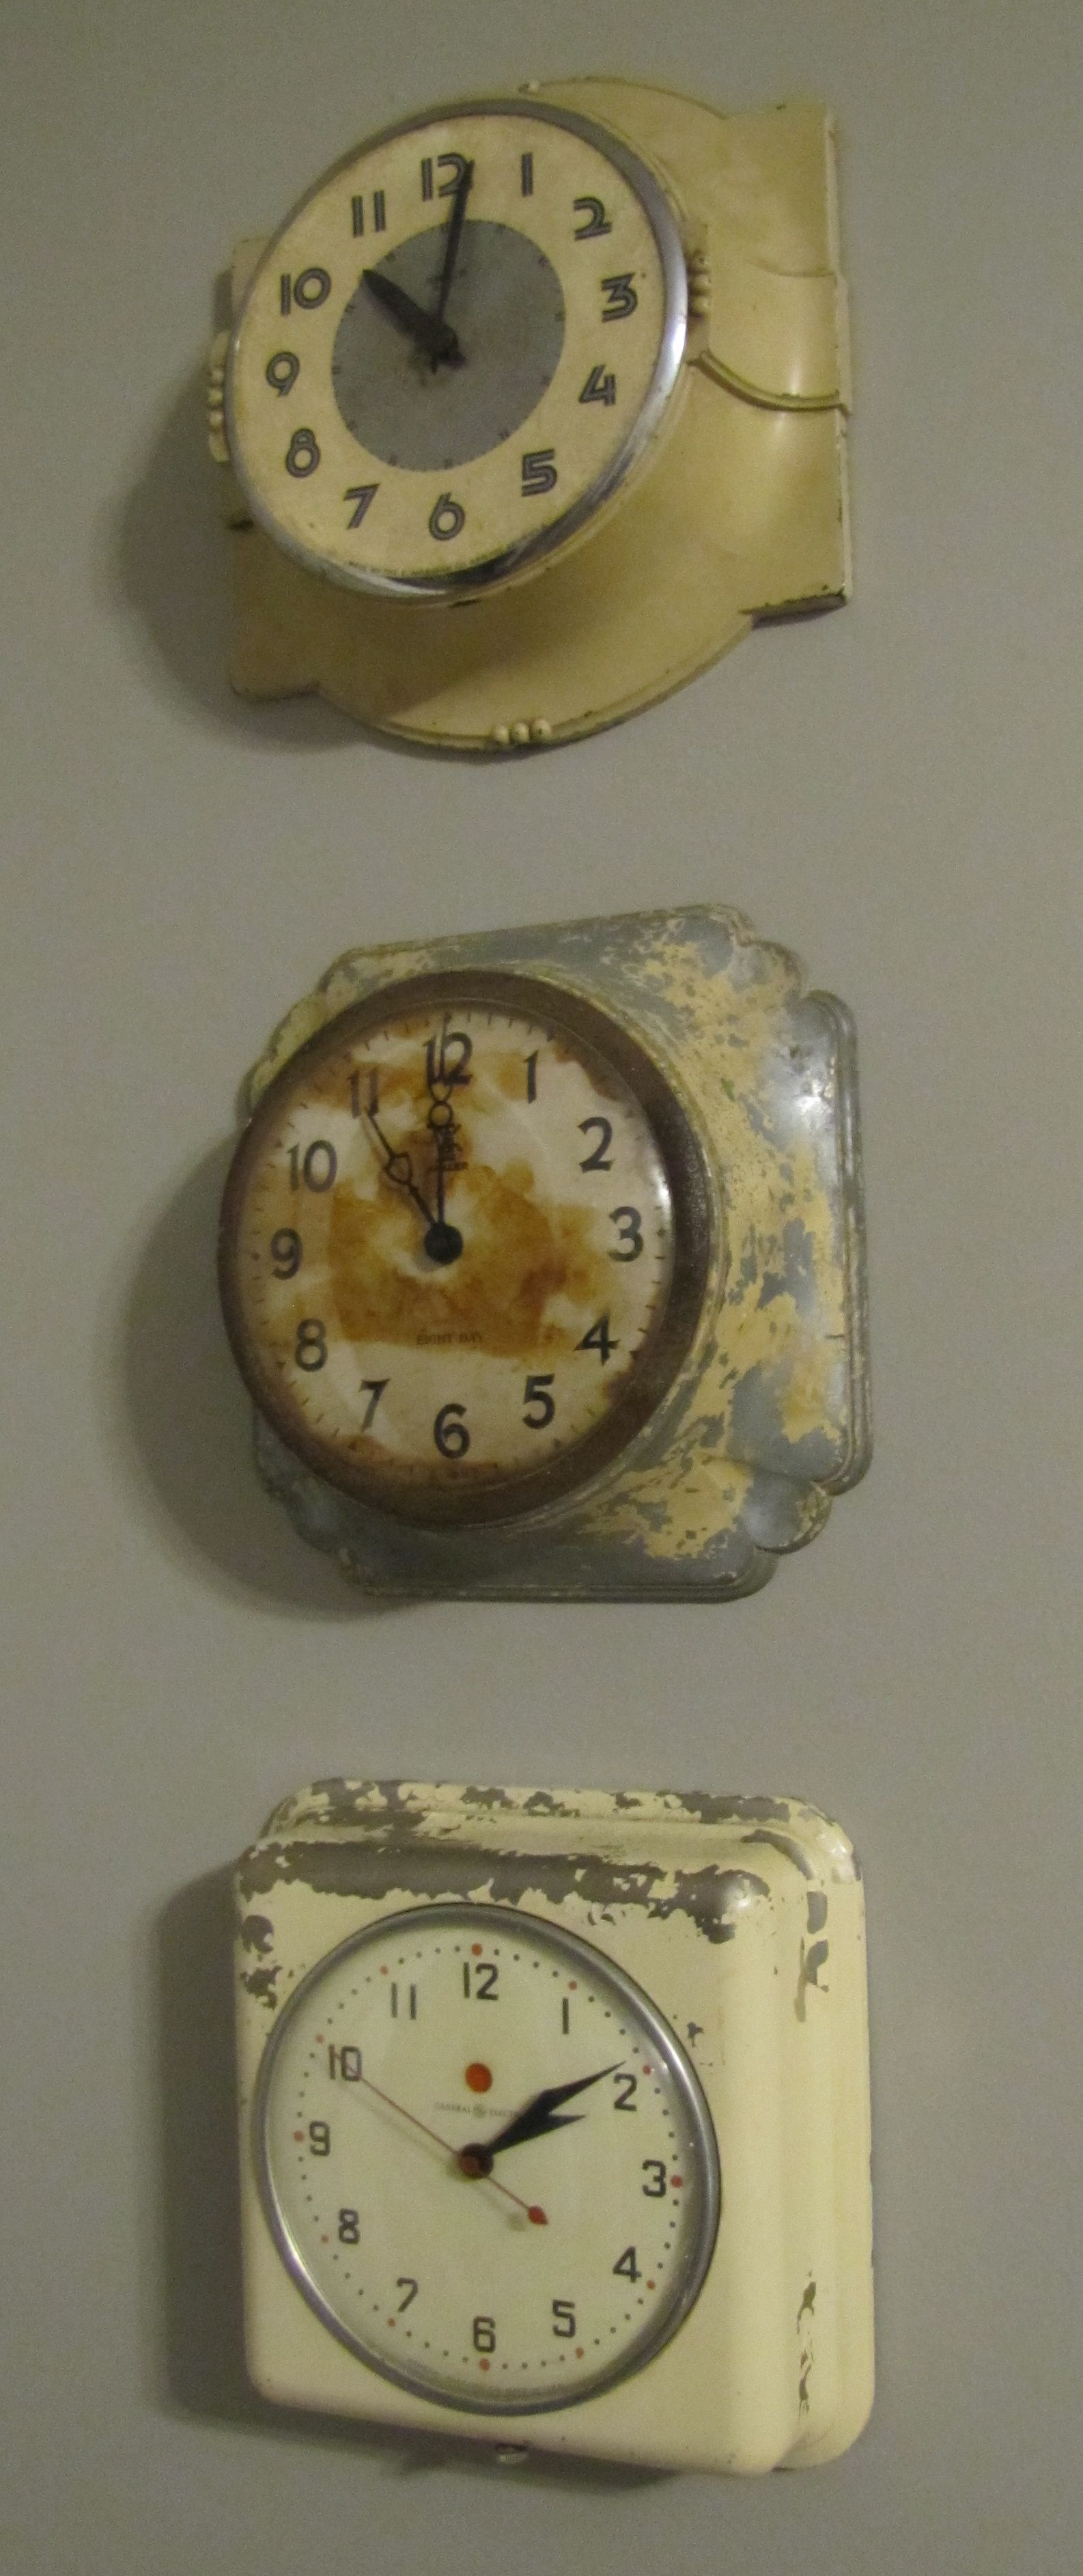 Amazing Vintage Clocks Love And If The Clocks Are Broken